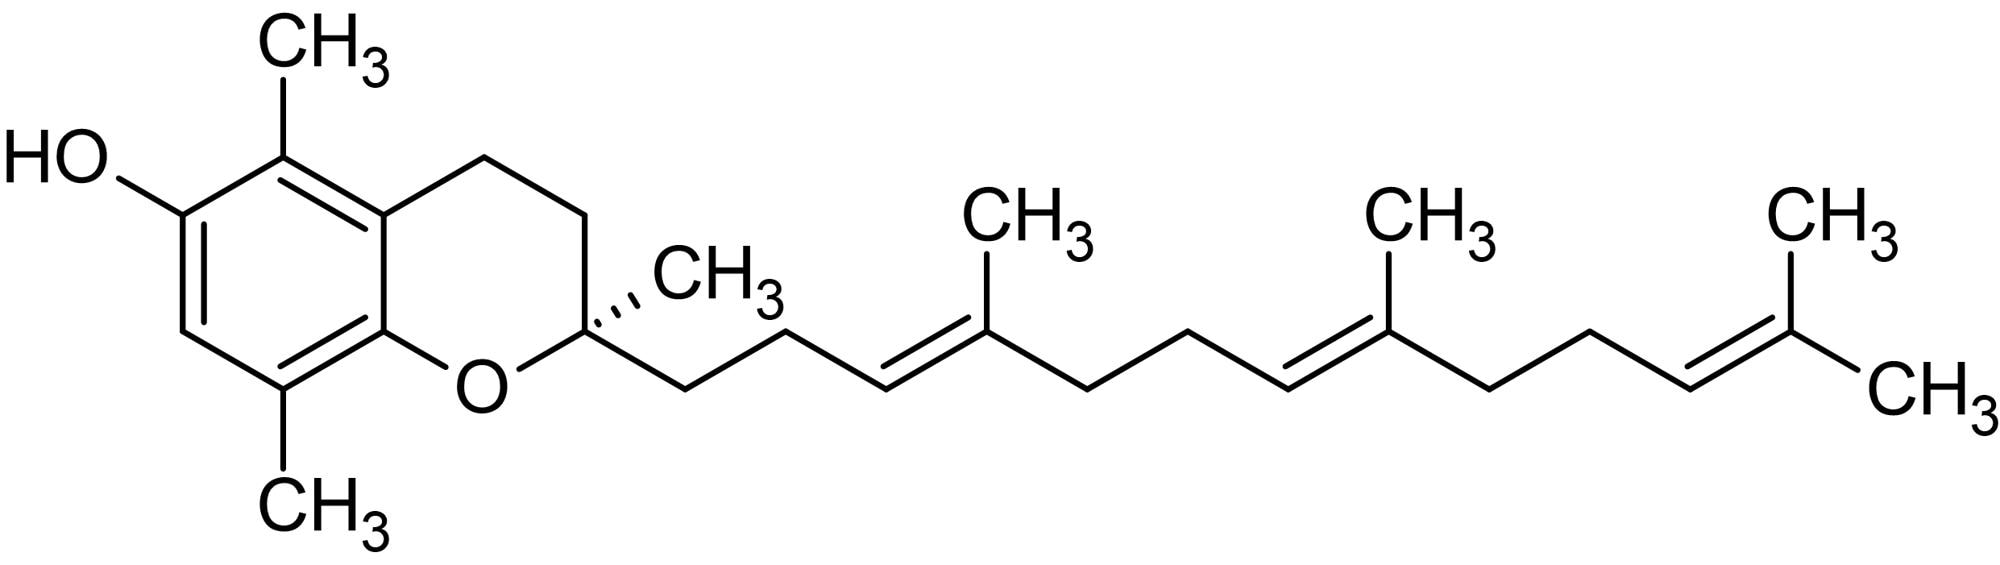 Chemical Structure - beta-Tocotrienol, Antioxidant agent (ab145176)